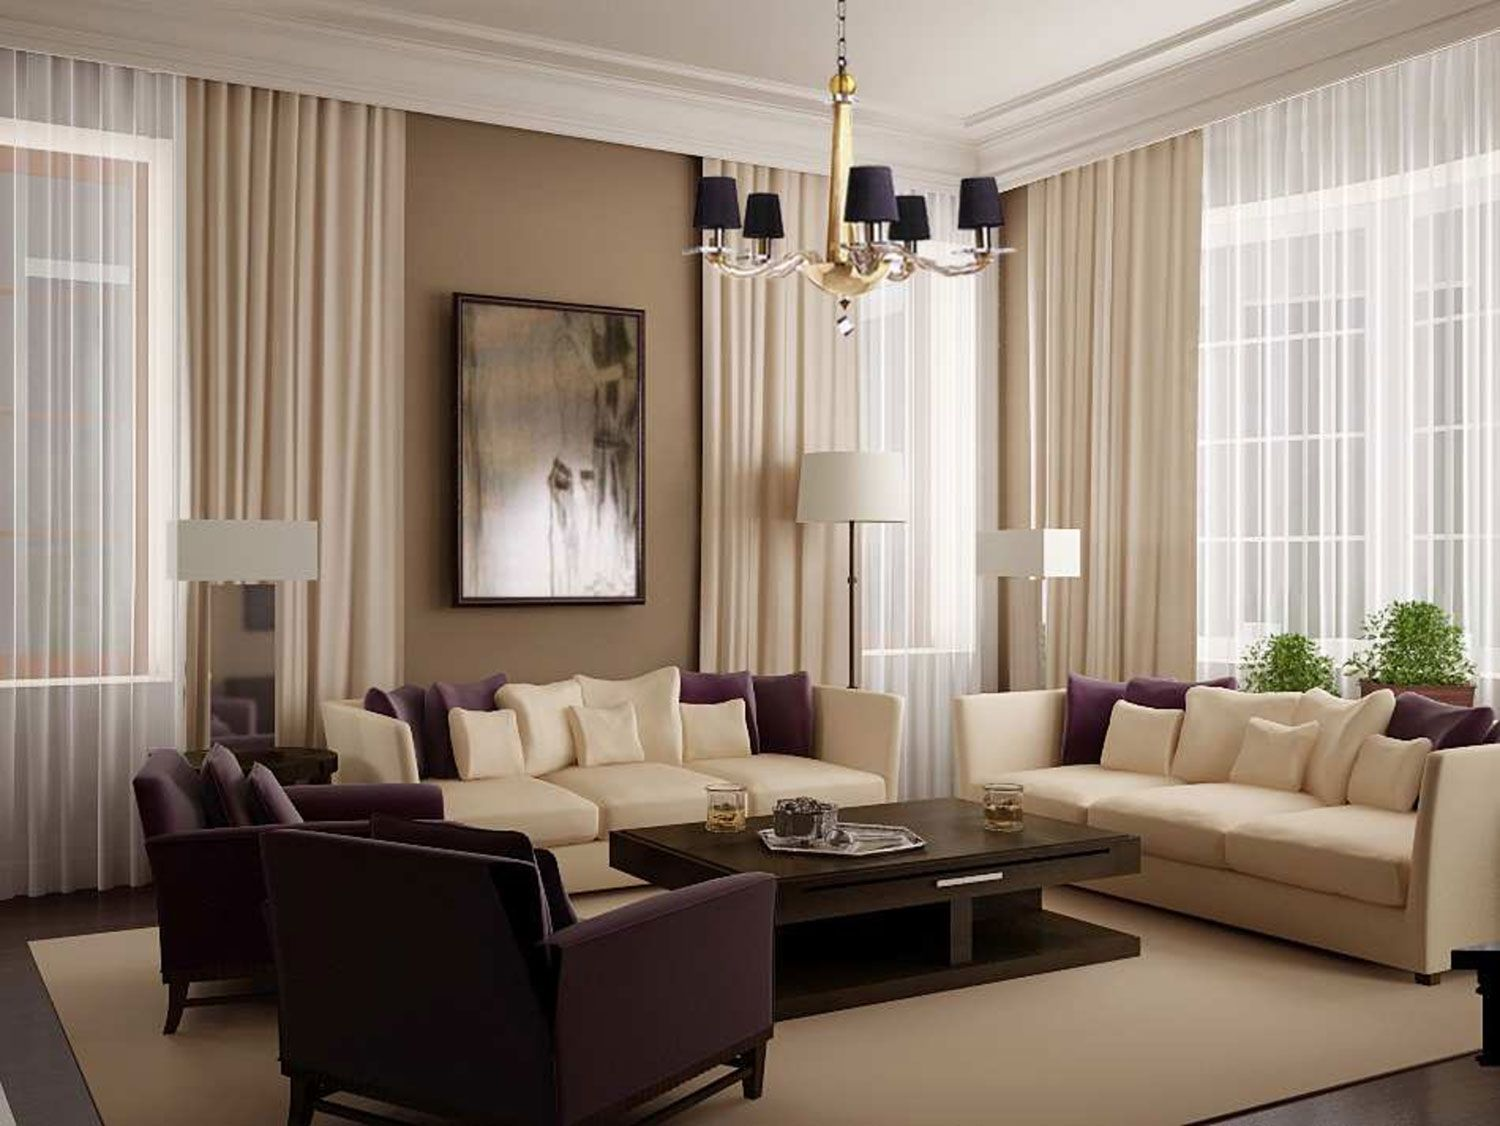 Amusing White Living Room Curtains With Cream And Dark Brown Sofa Gl Table On The Soft Rug Also Furnitured Black Chandelier Lighting Decoration